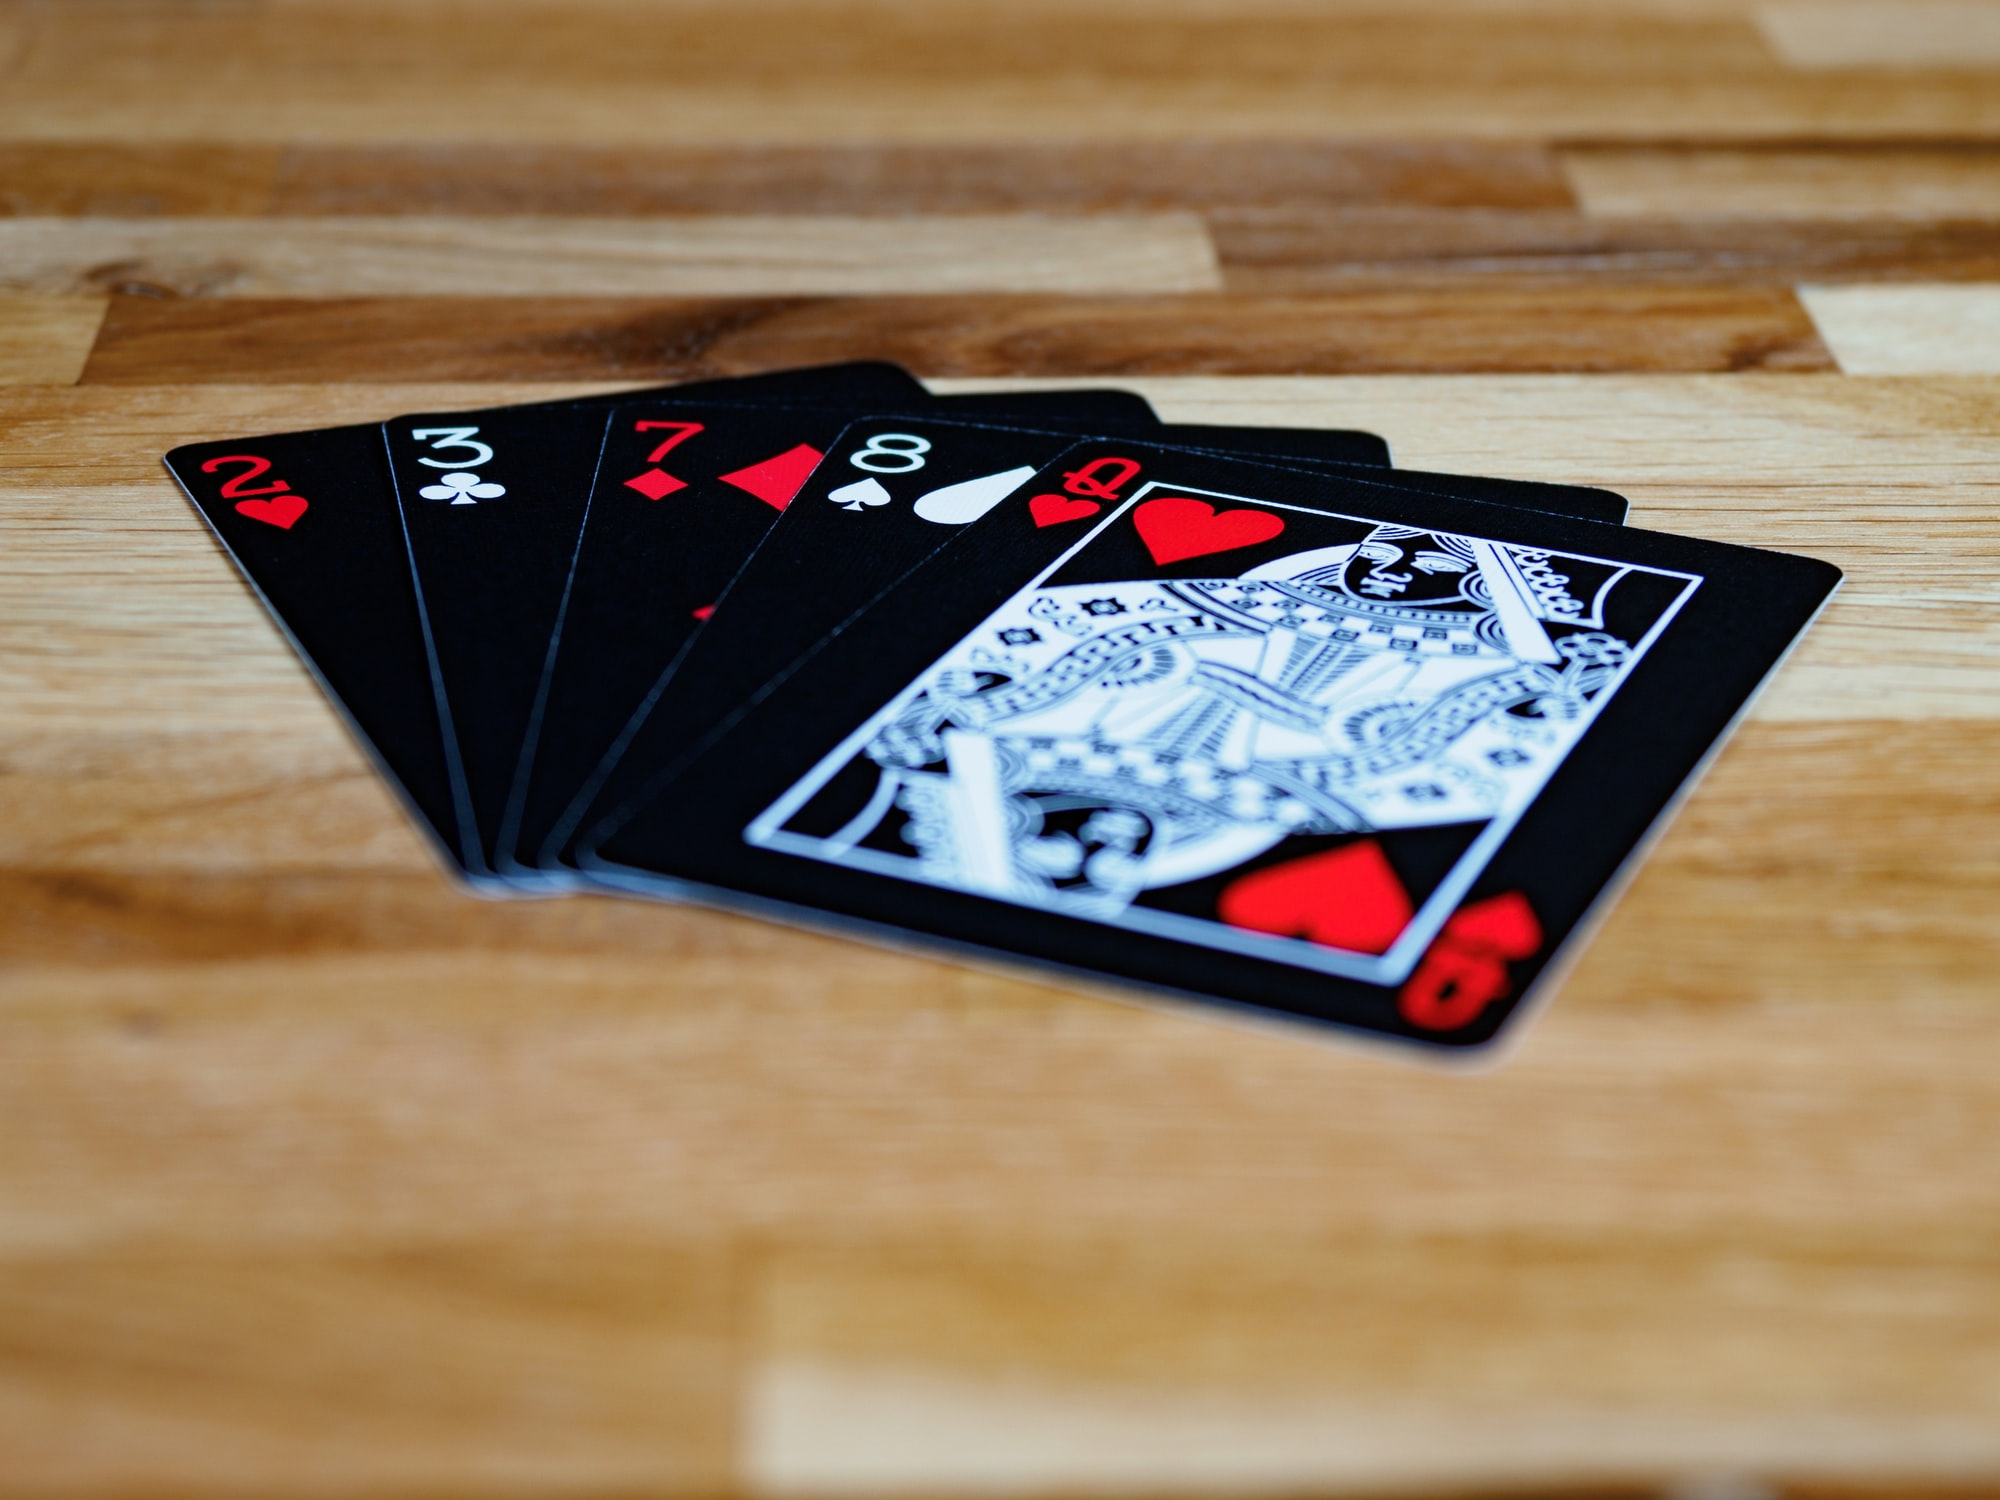 cards, playing cards, gambling, close up, bokeh, wood background, product shot, focus, deal, worst poker hand, throw away hand, poker, bad hand, loser, despair, bad luck, money loss, throw in your chips, gambling,